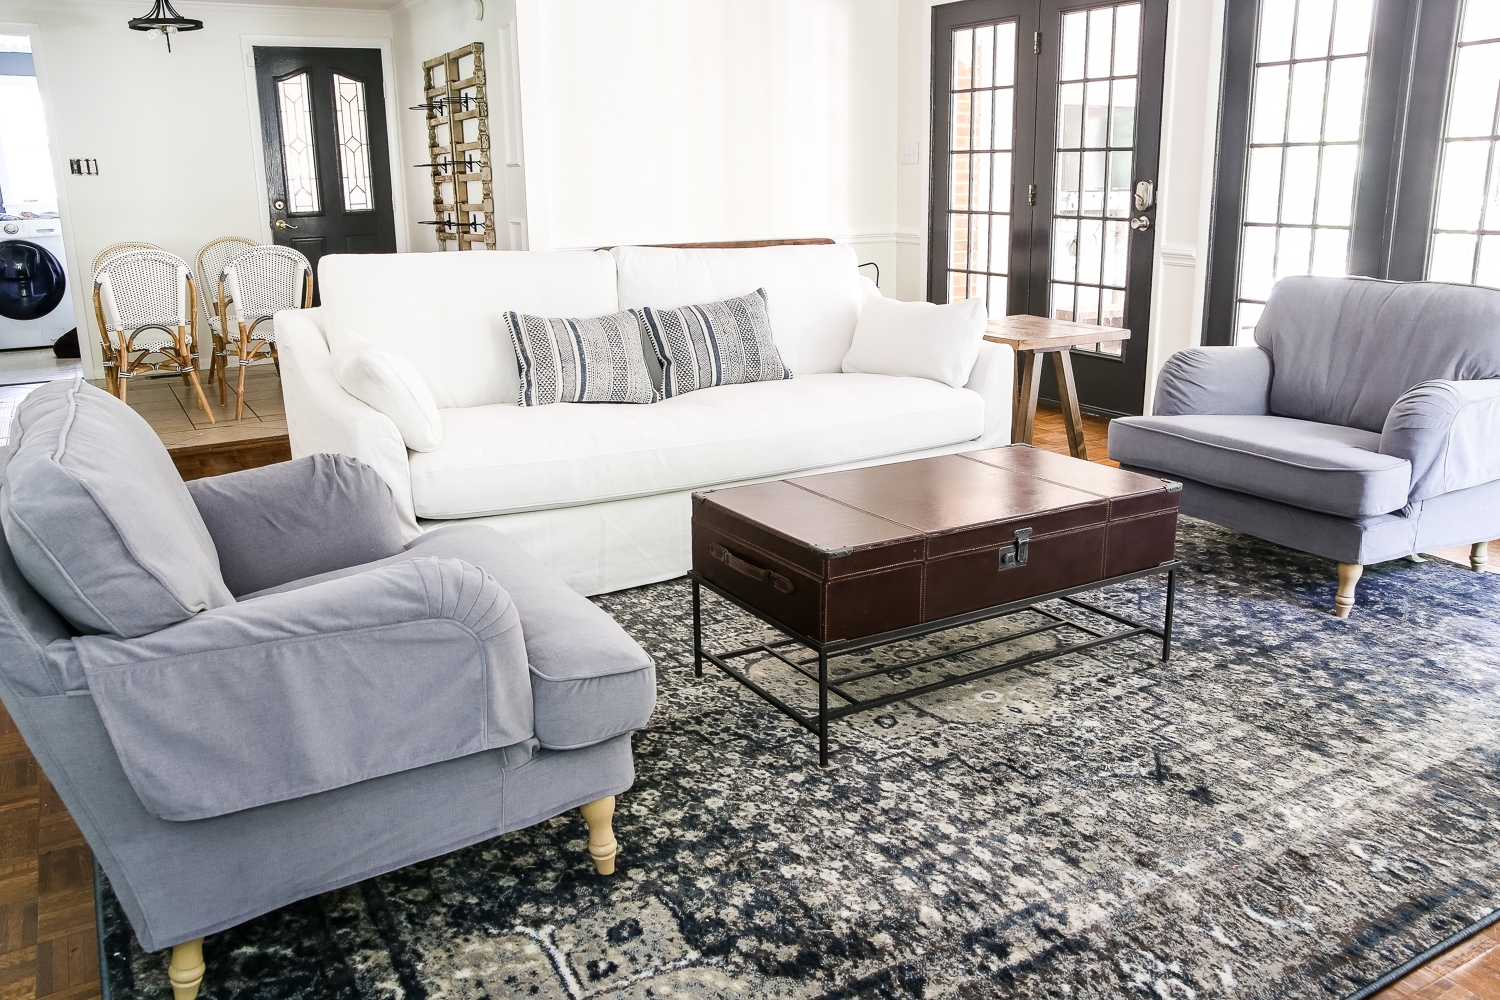 Well Known Comfortable Sofas And Chairs Pertaining To Ikea's New Sofa And Chairs And How To Keep Them Clean – Bless'er House (View 15 of 15)